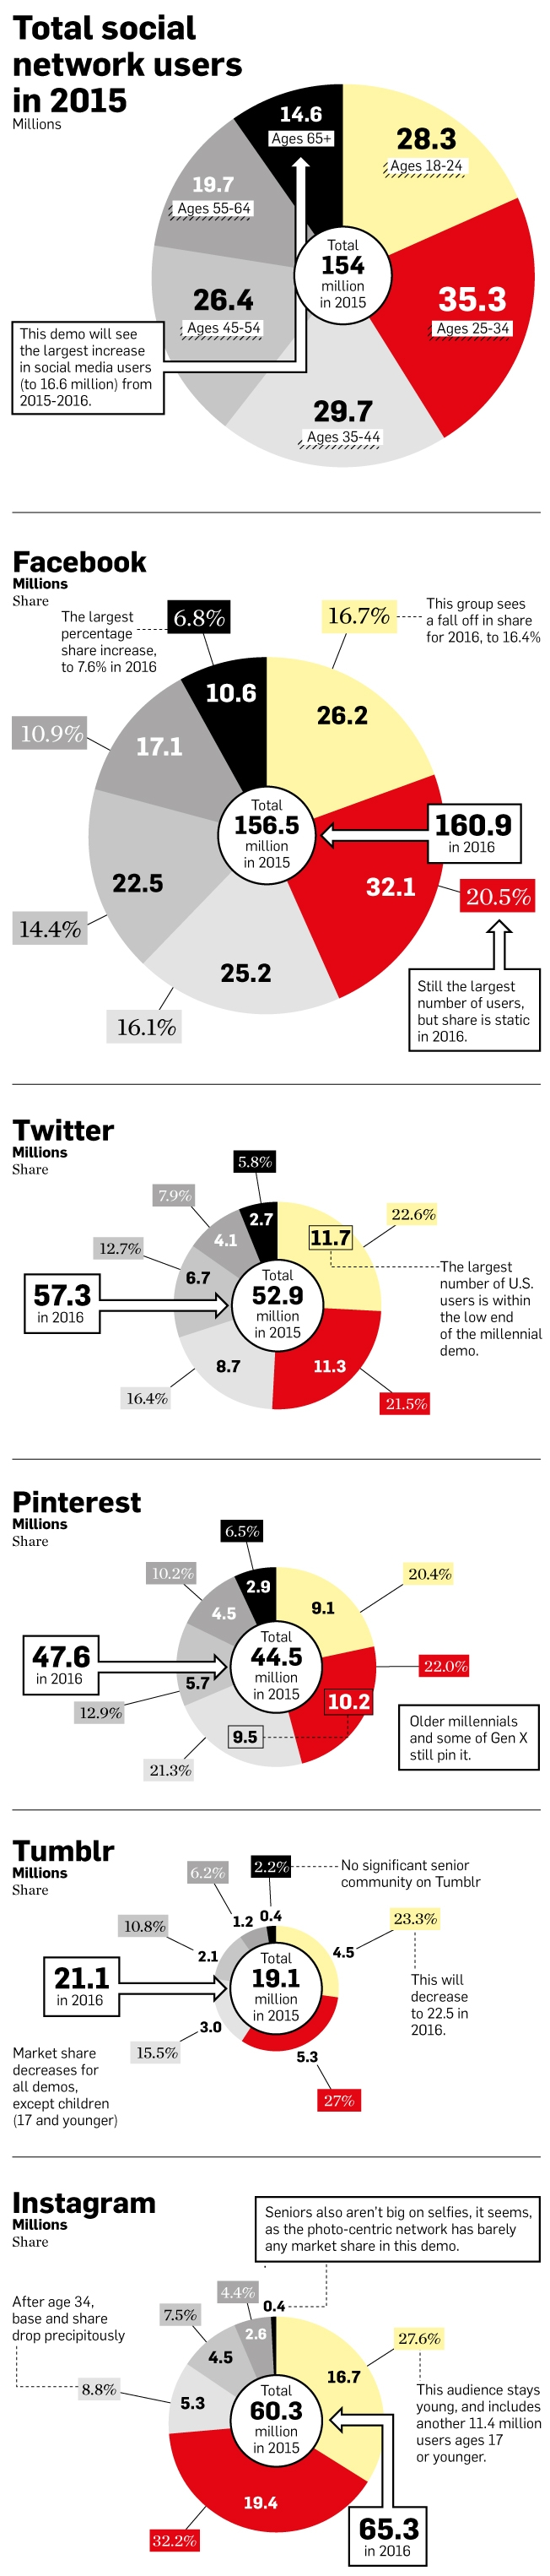 The New Social Stratosphere: Who Is Using Facebook, Twitter, Pinterest, Tumblr and Instagram in 2015 and Beyond: Facebook's not dead, it's just getting grayer